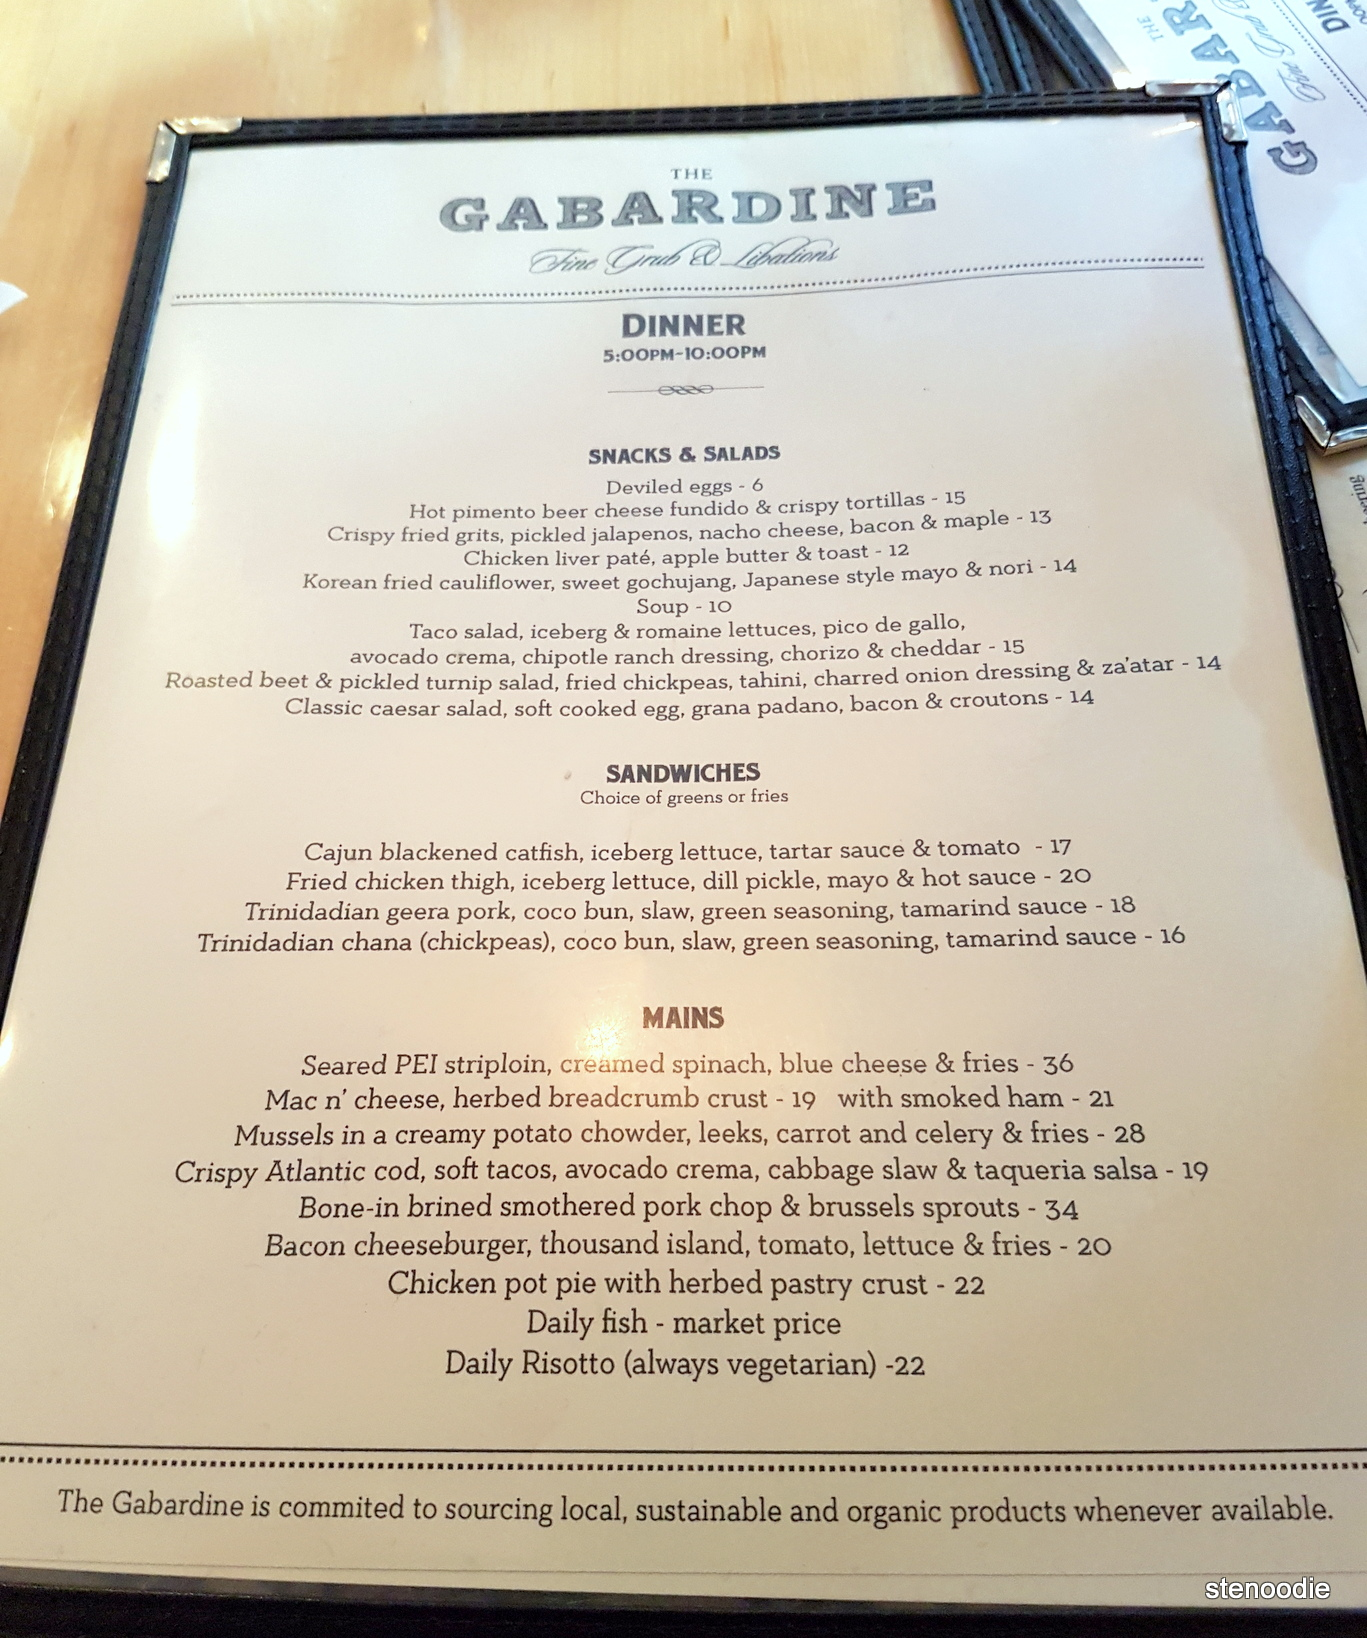 the Gabardine dinner menu and prices